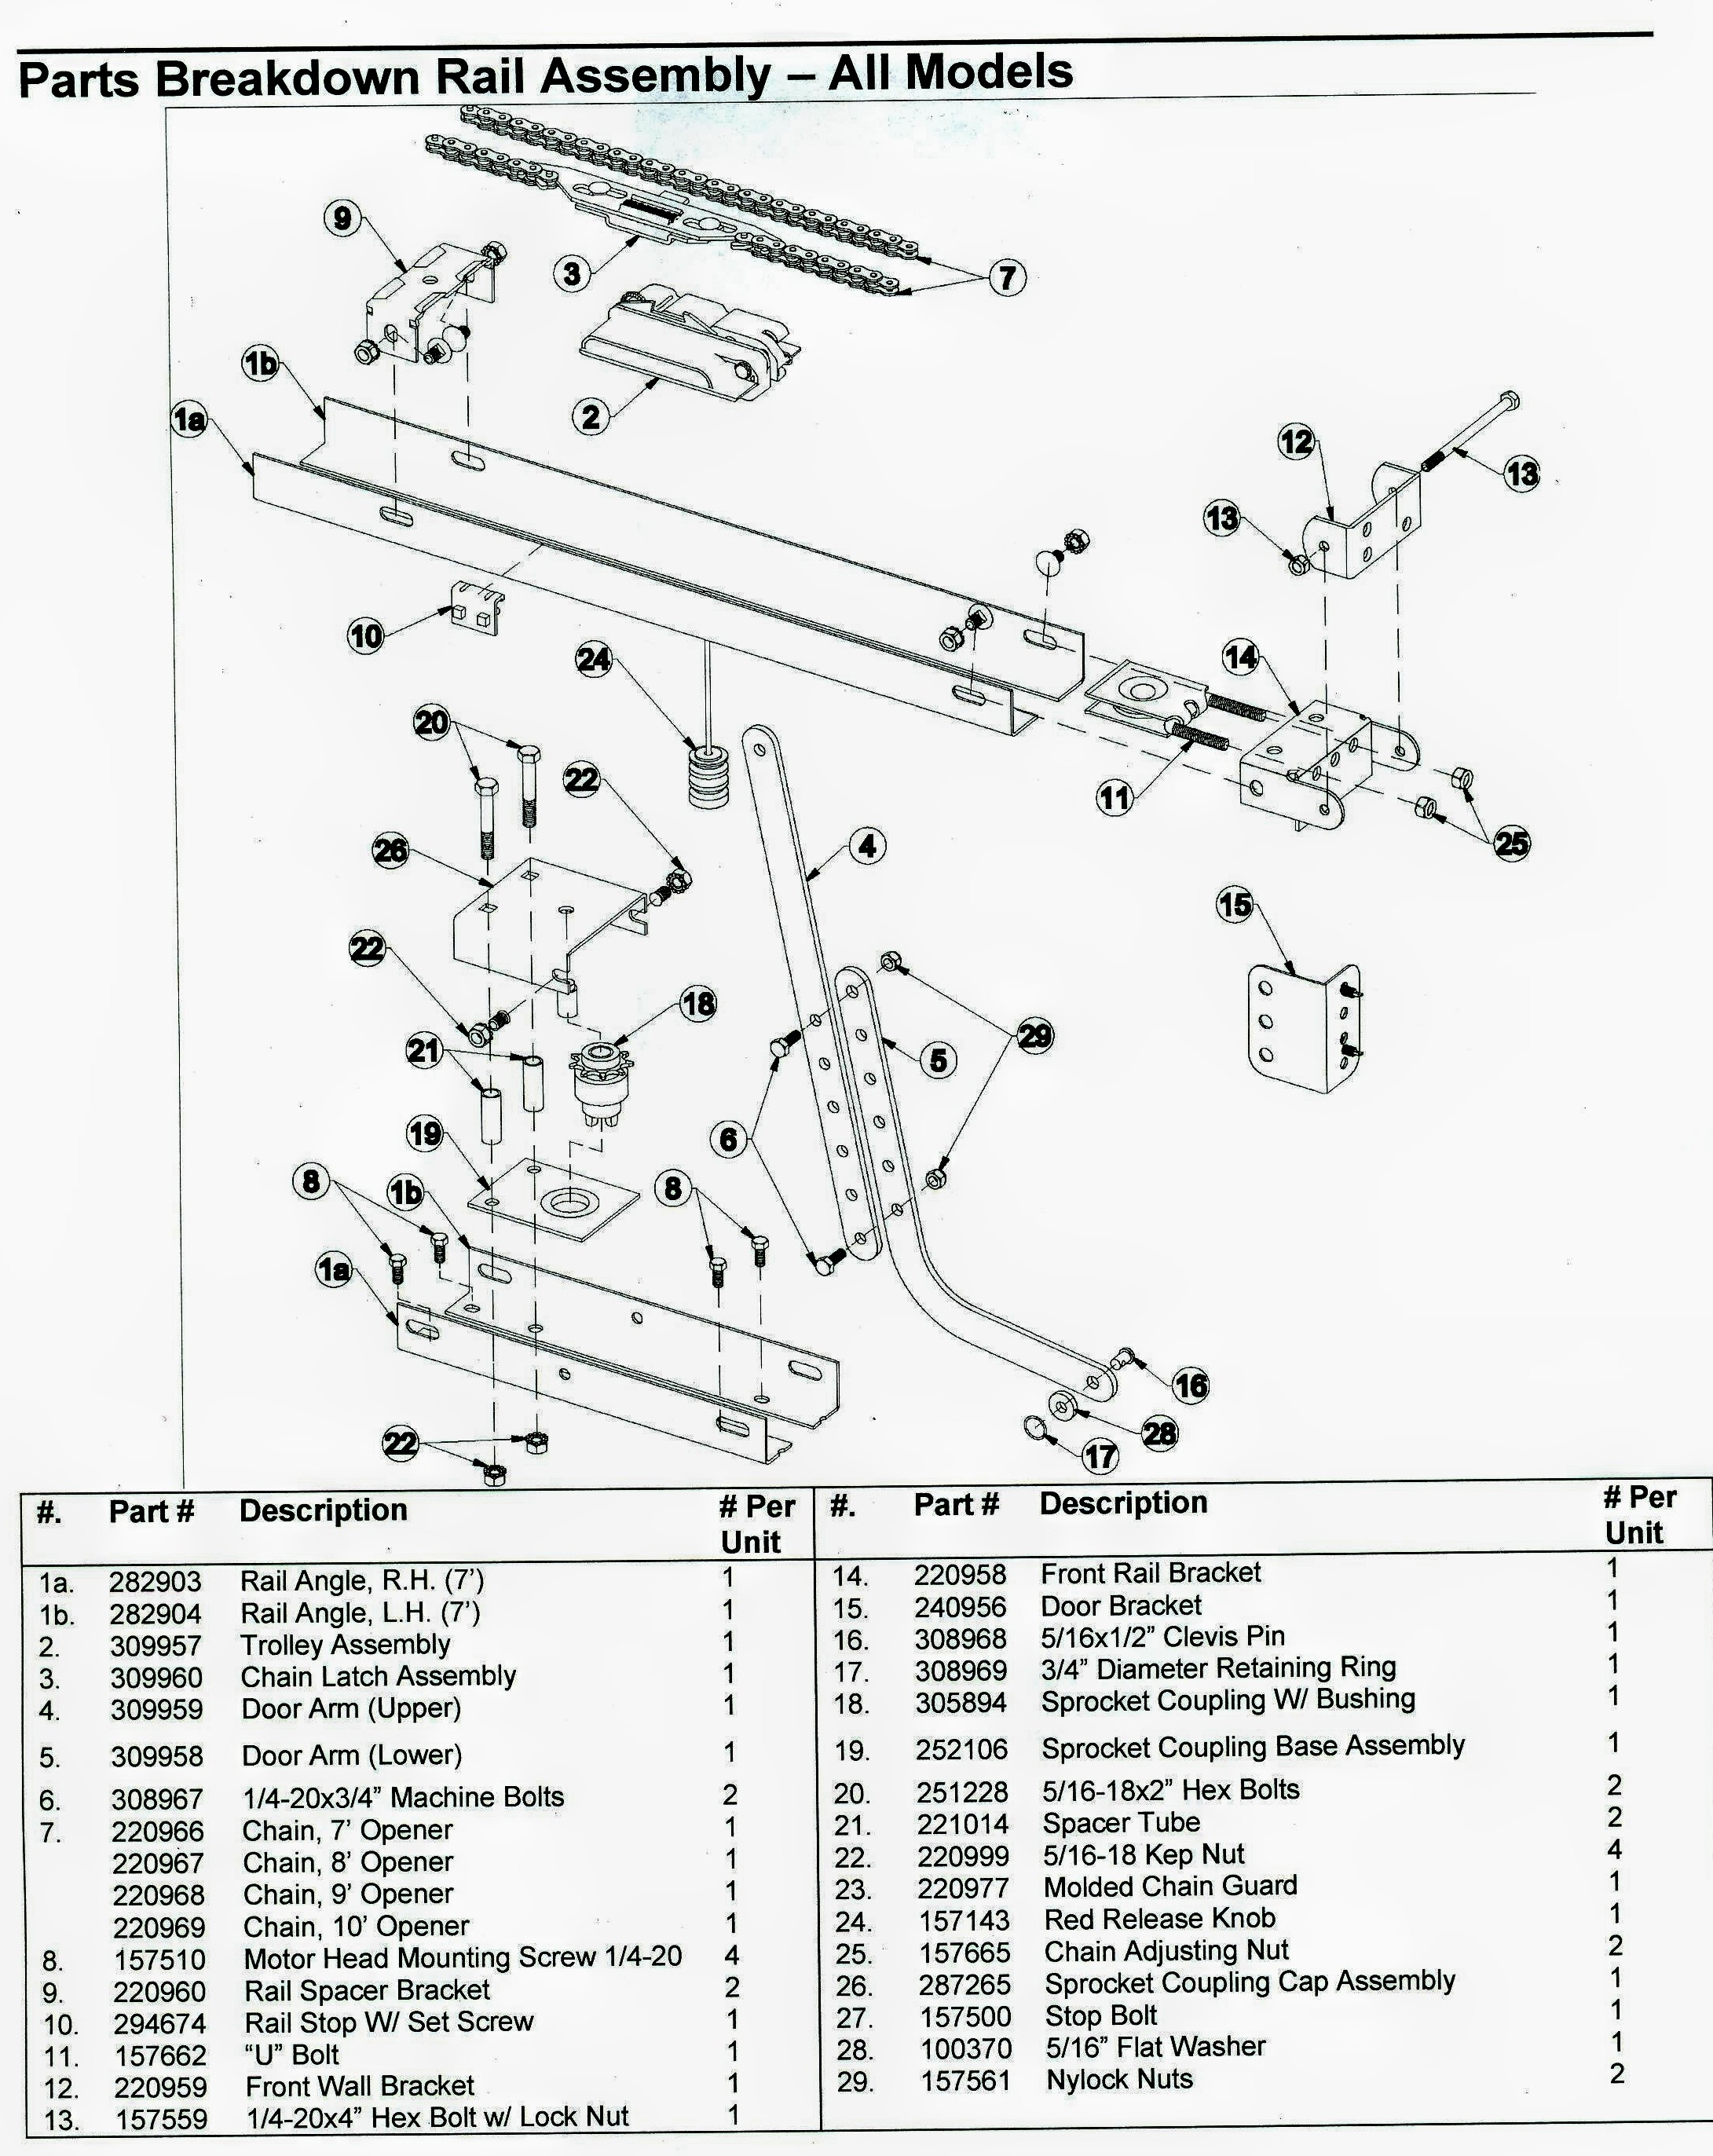 wiring diagram for liftmaster garage door opener wiring diagram throughout liftmaster garage door opener parts diagram lift master wiring diagram door lift pump diagram, lift parts dayton 6a859 wiring diagram at readyjetset.co